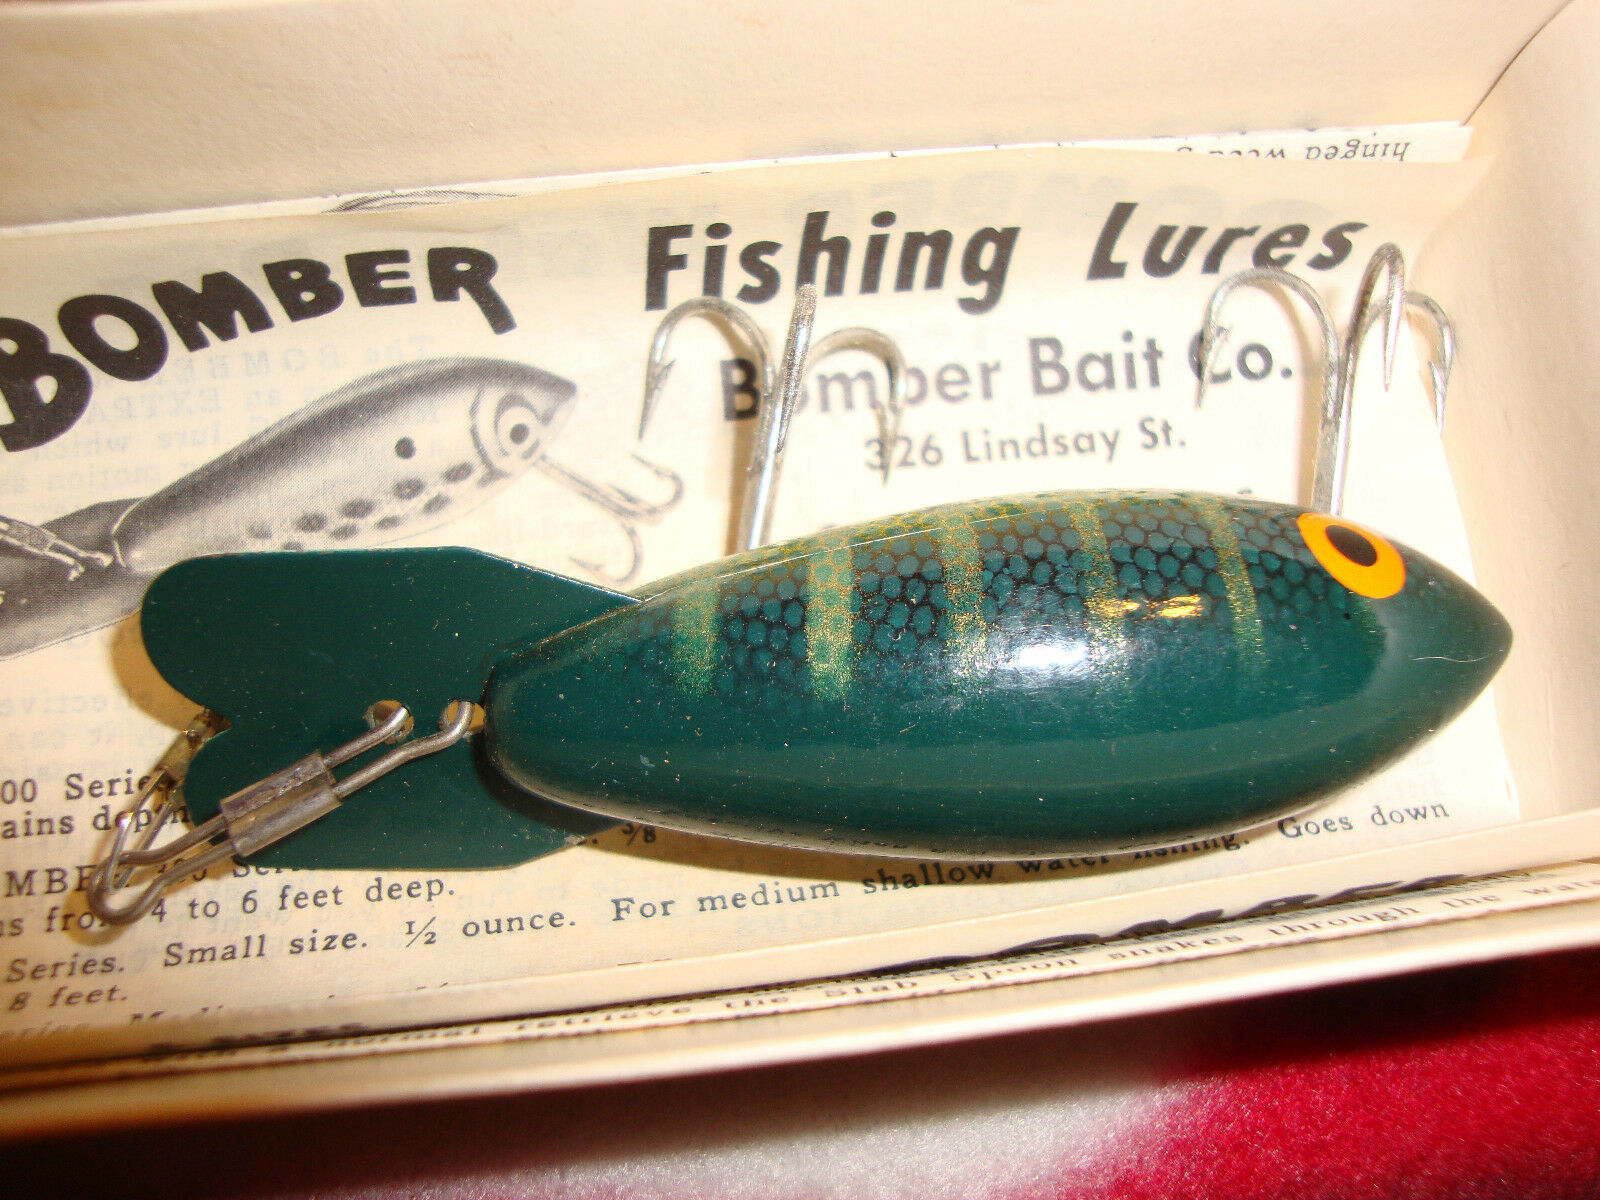 BOMBER BAIT Co. BOMBER VINTAGE FISHING LURE with ORIGINAL BOX color 405